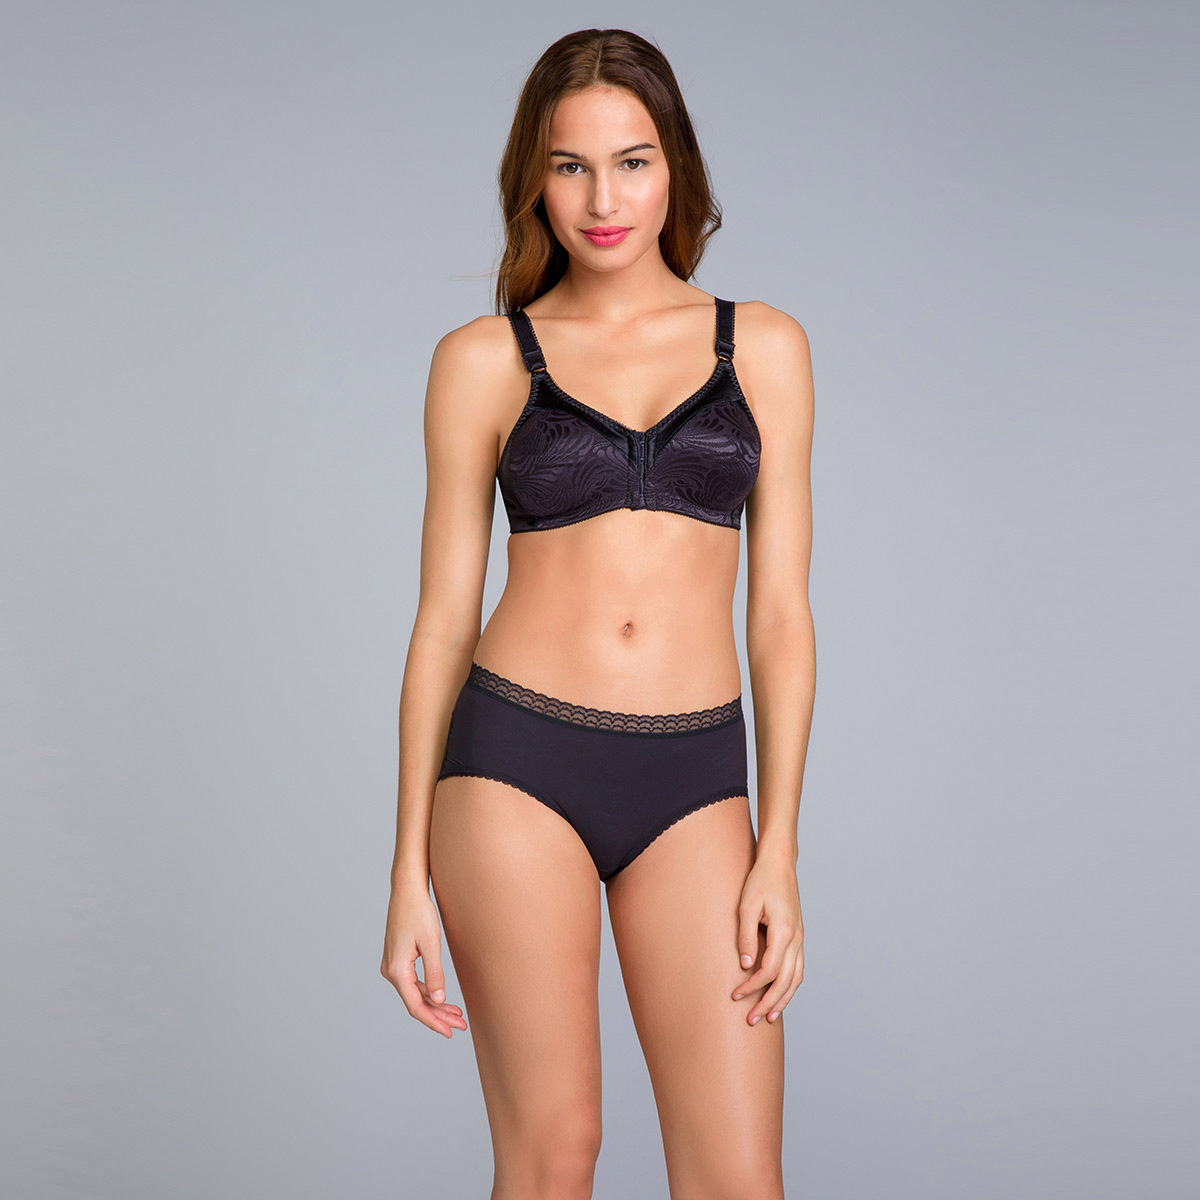 Non-Wired Full Cup Bra with Front Closure in Black - Double Support - PLAYTEX